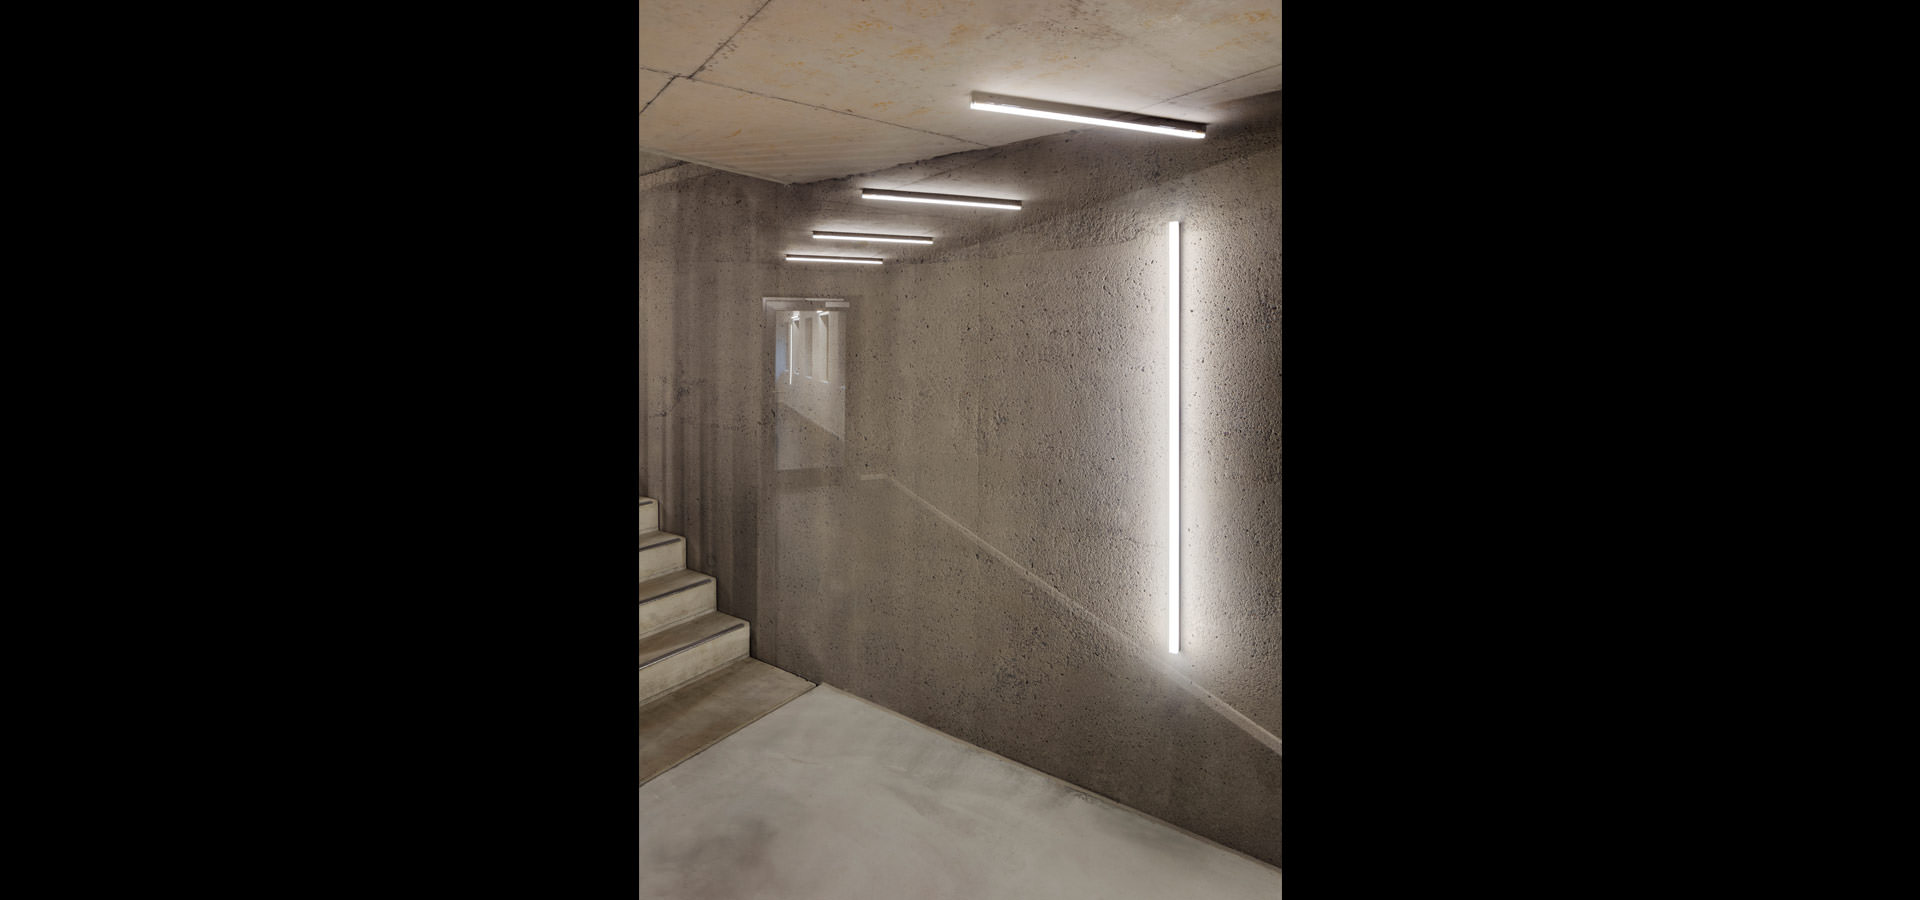 LED lighting with luminaires from Luxsystem purism and Architectural lighting in Woodie